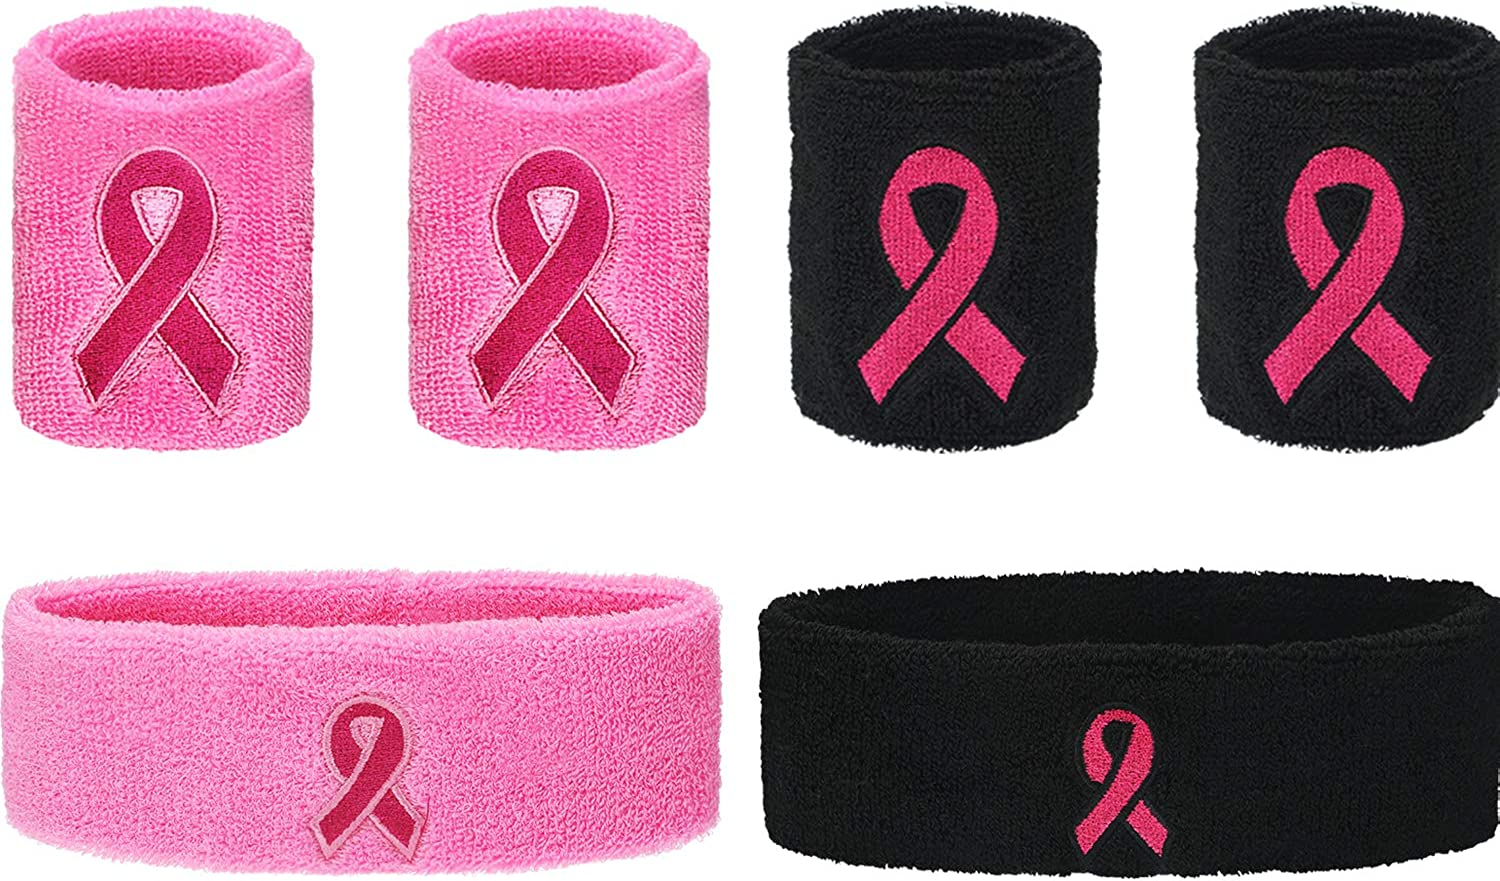 SATINIOR 6 Pieces Pink Ribbon Sweatbands Breast Cancer Awareness Sweatbands, Includes 2 Pieces Sweat-Wicking Headbands Hairbands and 4 Pieces Terry Cloth Wristbands for Sports (Pink and Black)